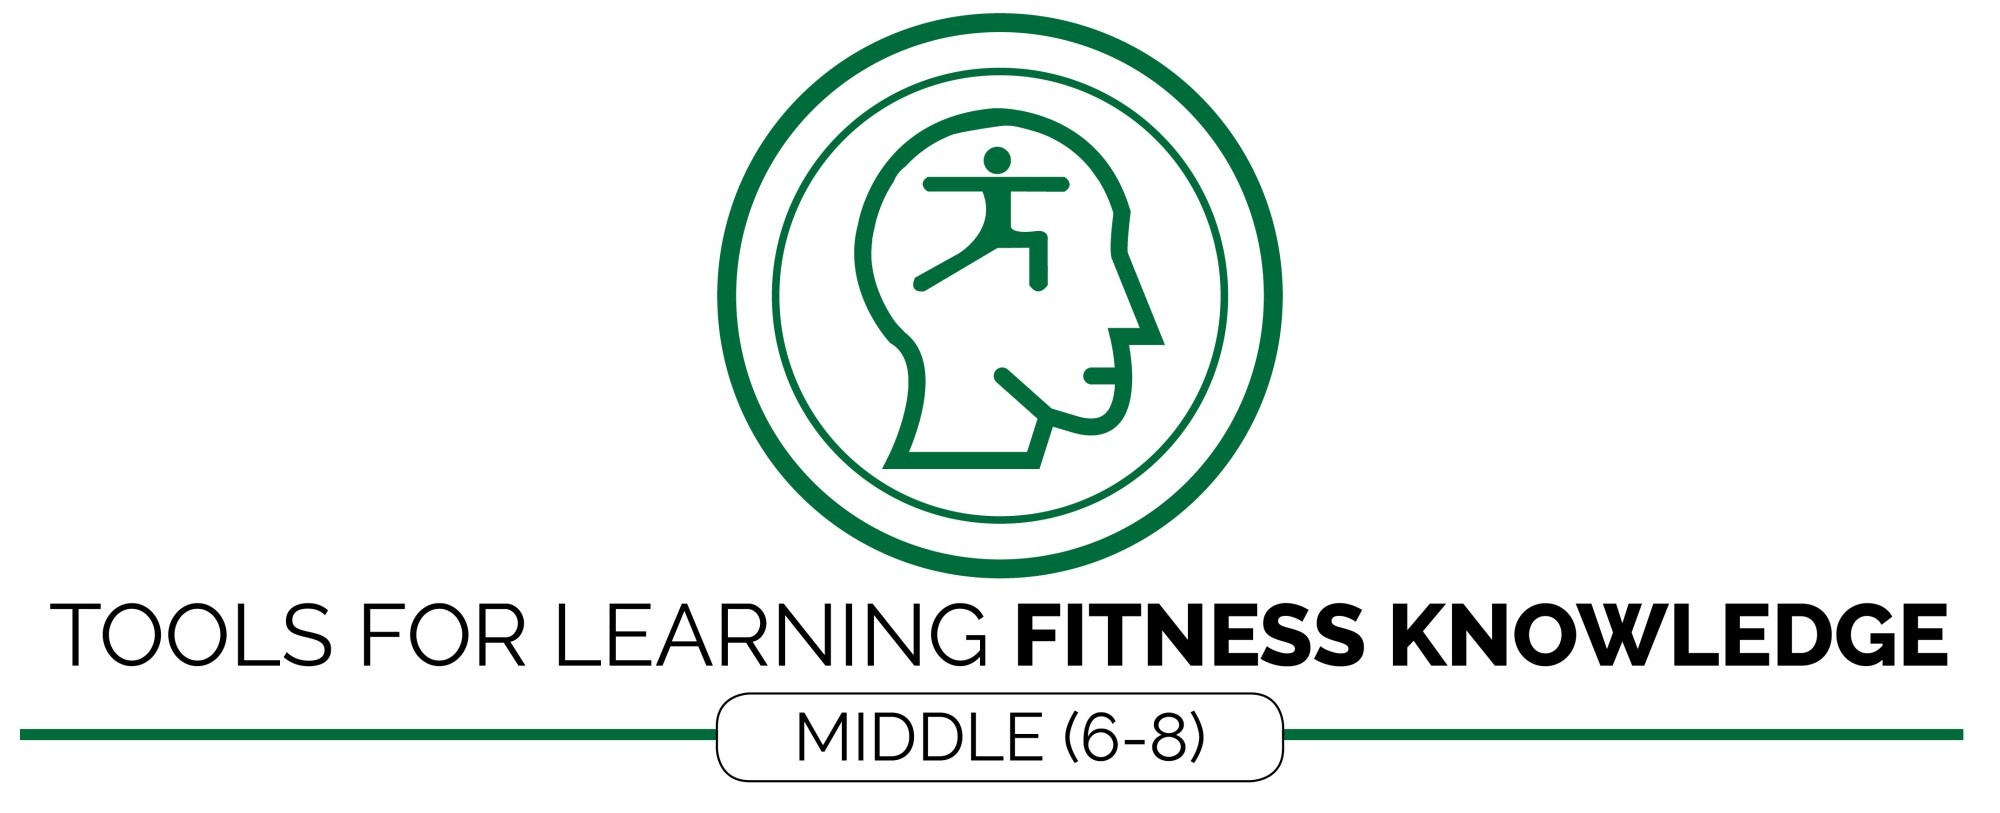 hight resolution of Fitness Knowledge(MS 6-8) - OPEN Physical Education Curriculum